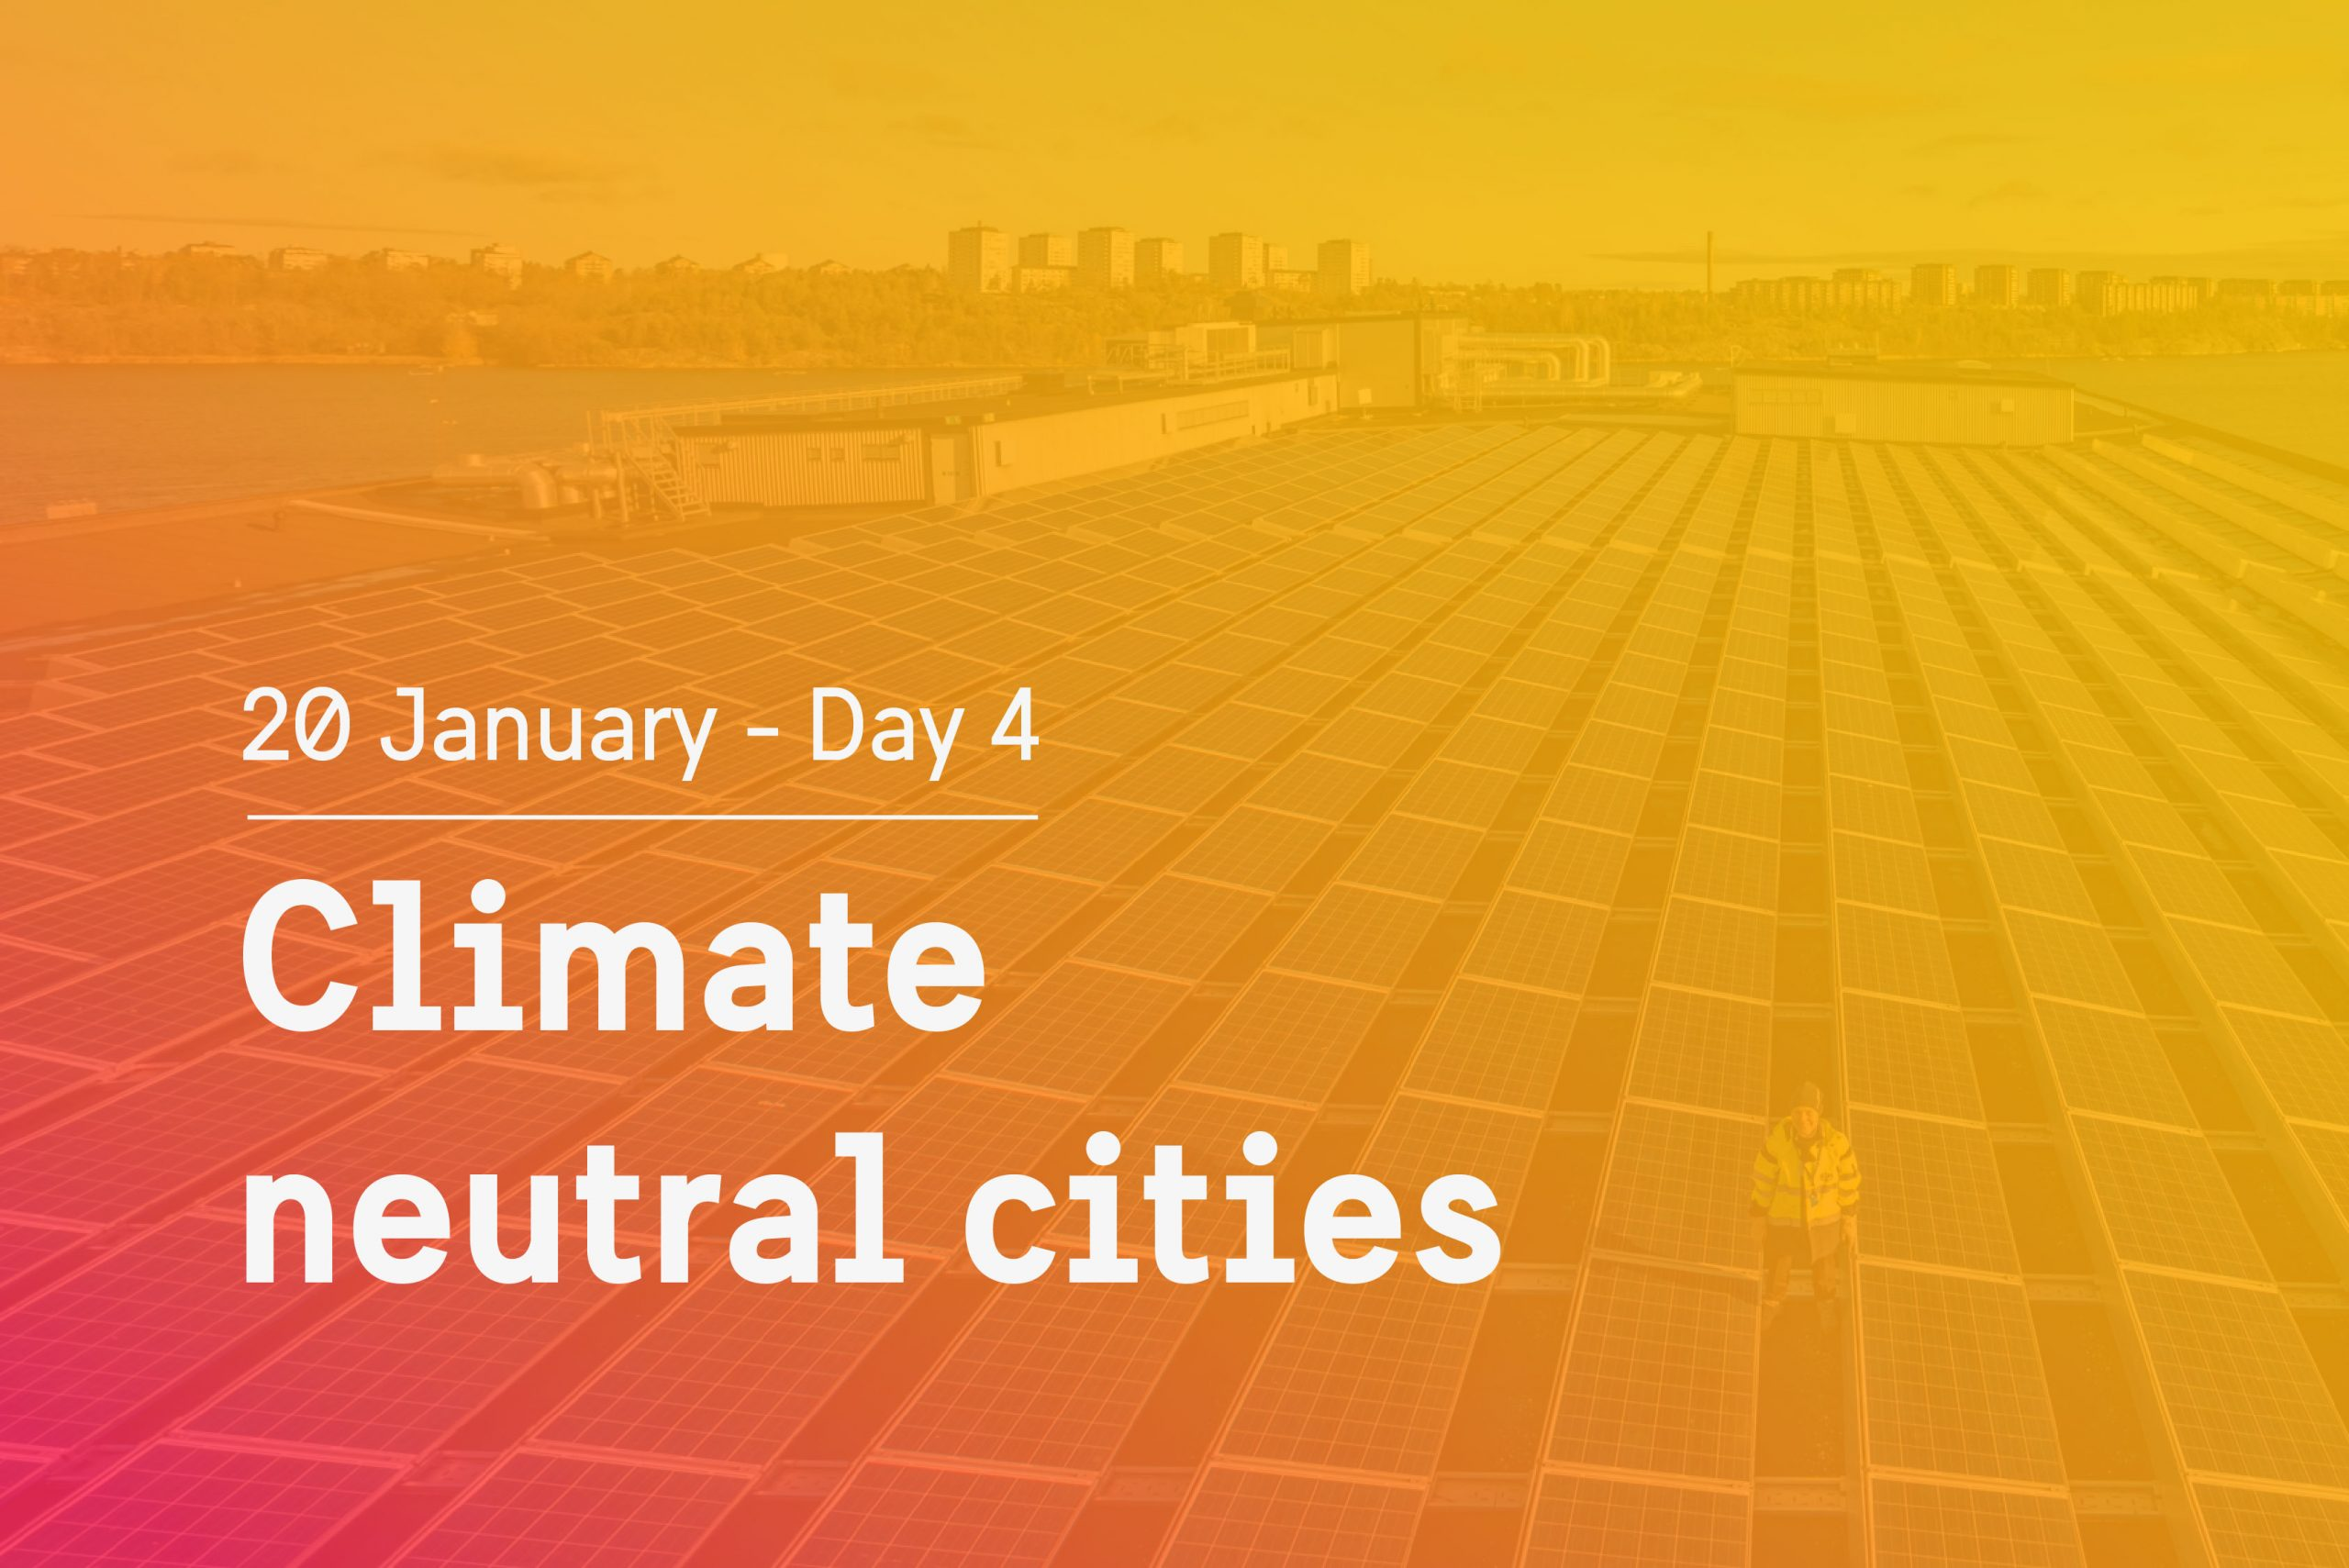 Day 4 theme: Climate neutral cities